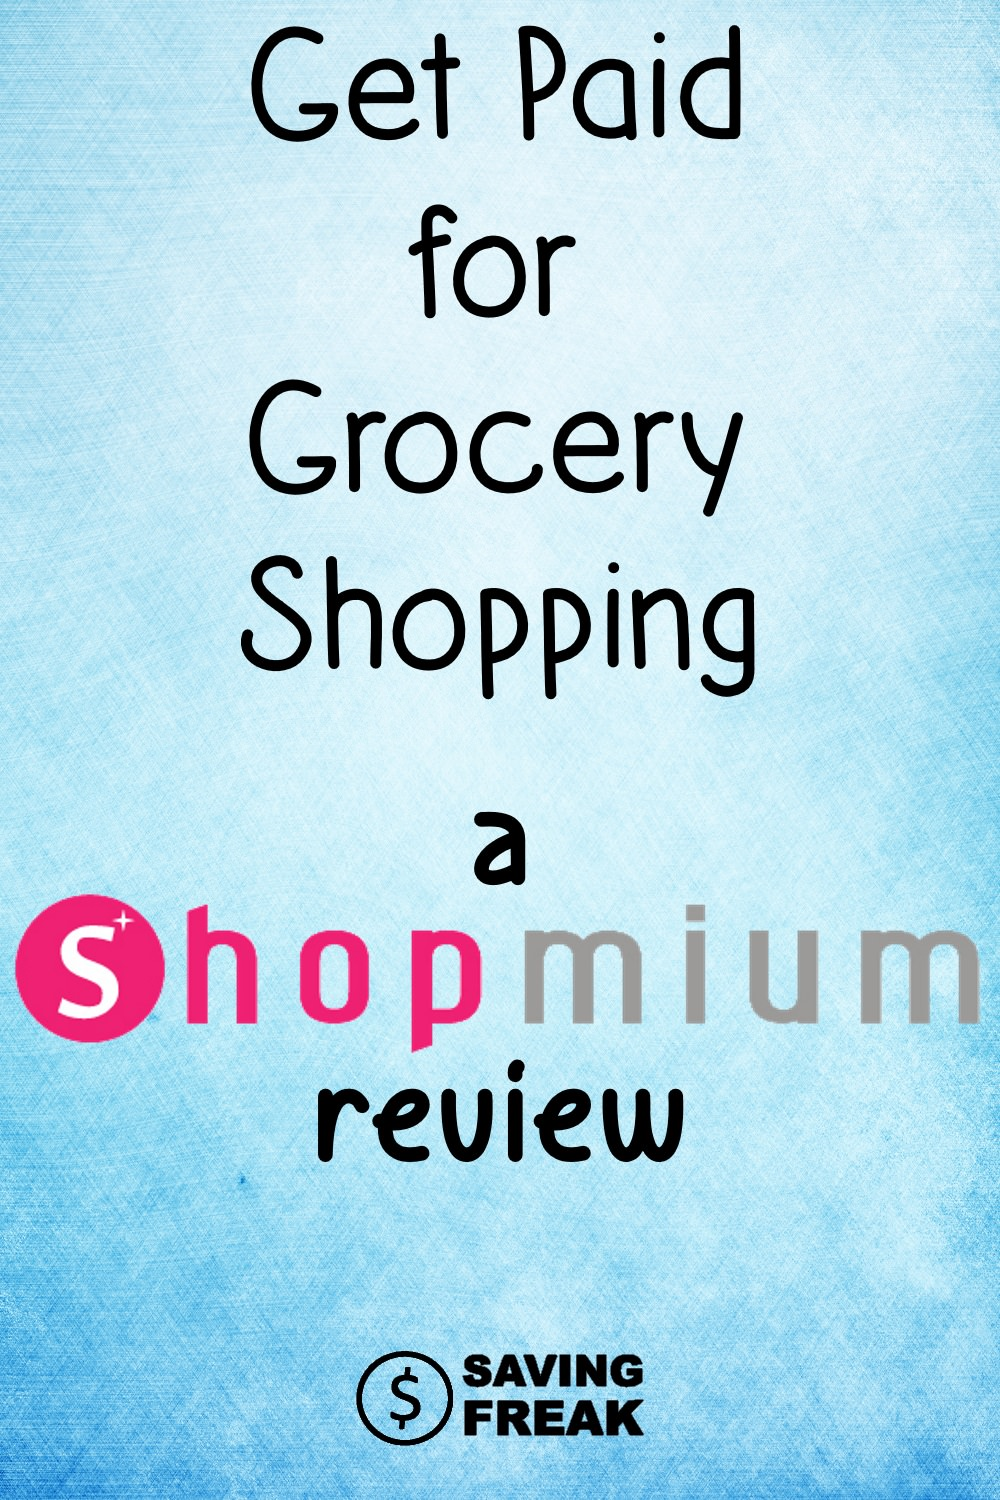 This shopmium app review explains how shopmium will save you money by making it easy to redeem digital coupons for your grocery shopping.